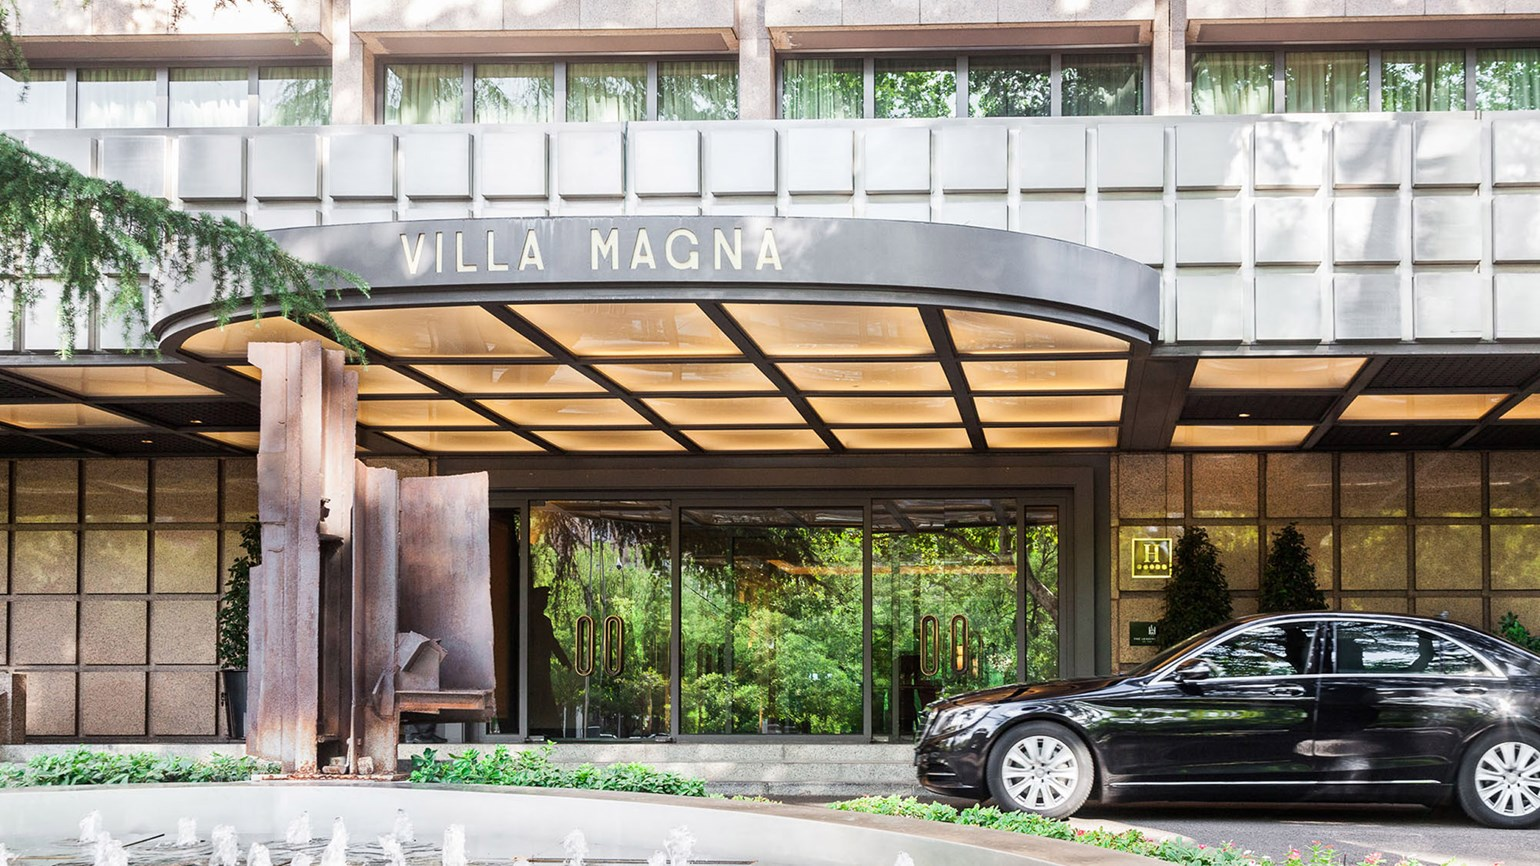 Rosewood to reopen Madrid's Hotel Villa Magna